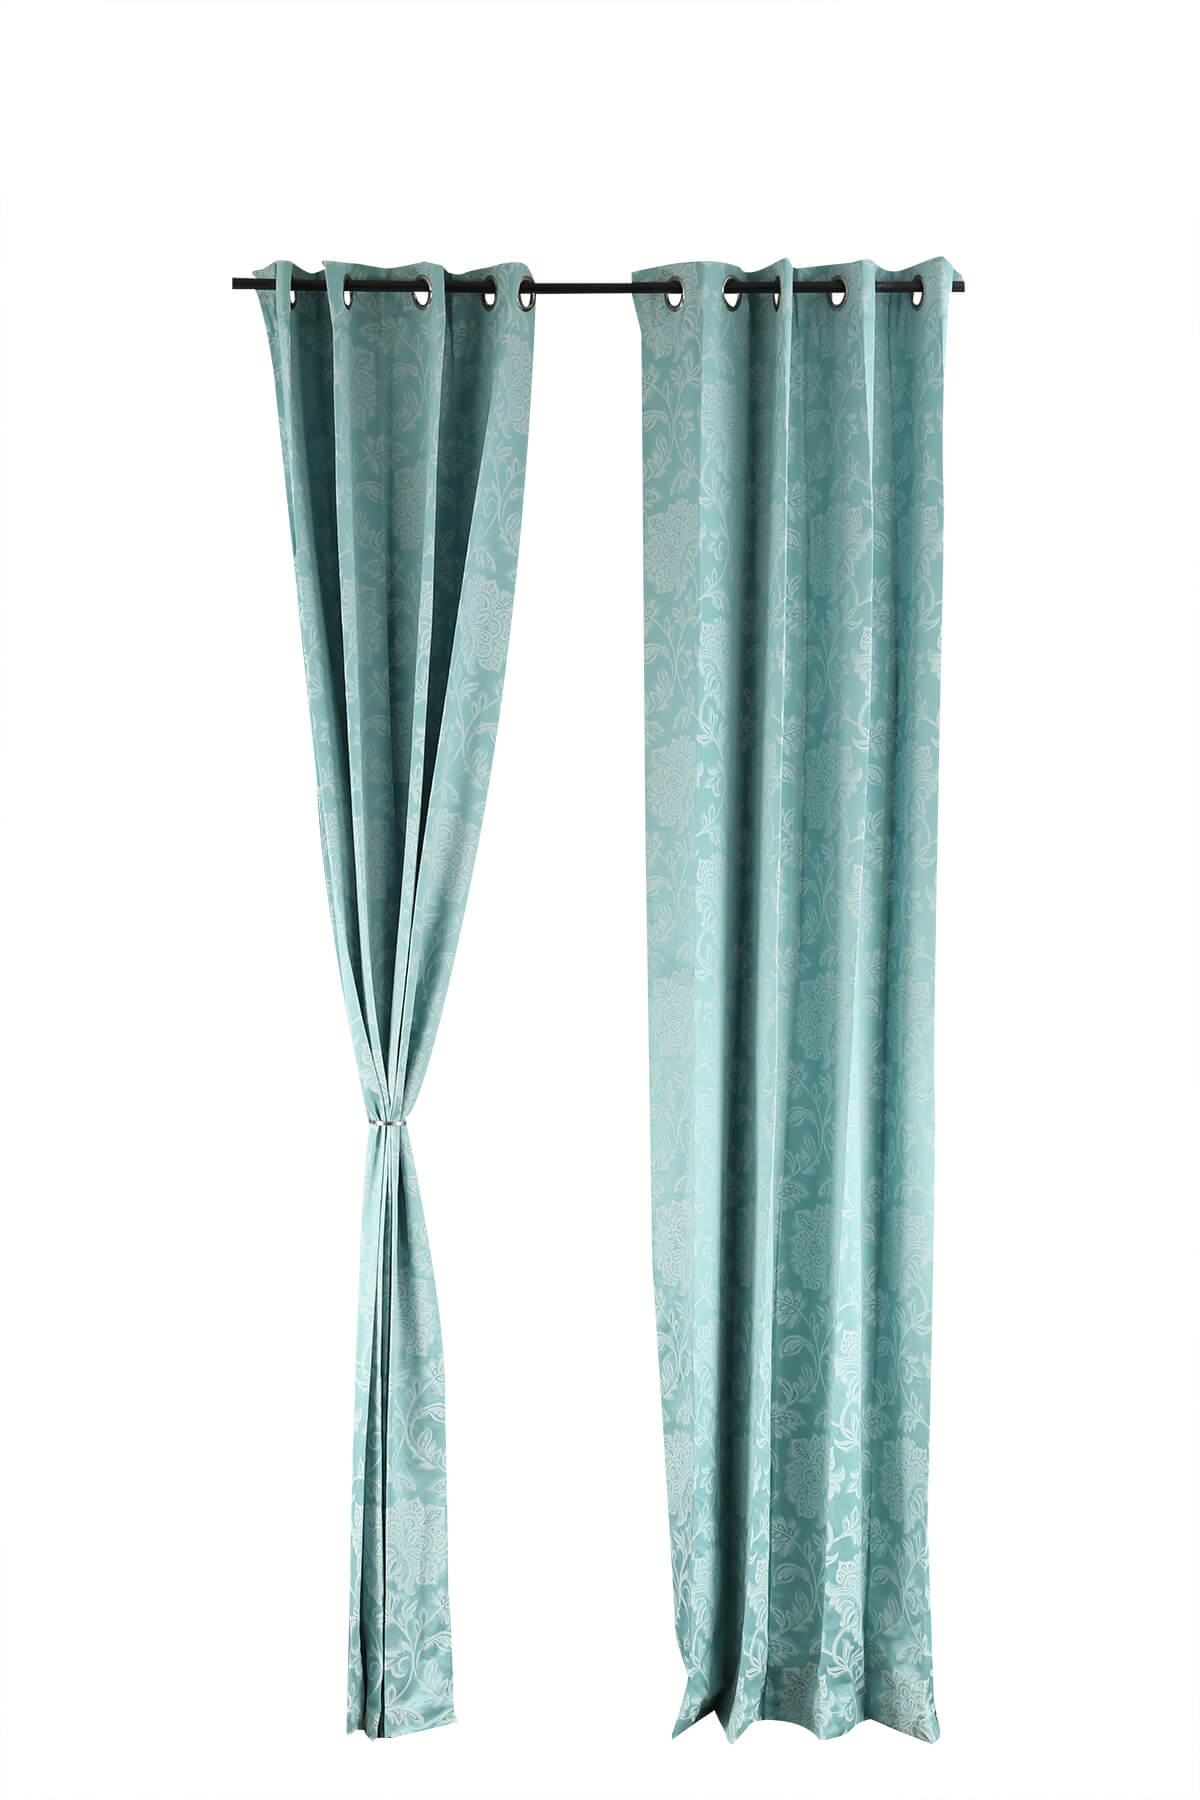 Florina Door Curtain Sea Polyester Door Curtains in Sea Green Colour by Living Essence